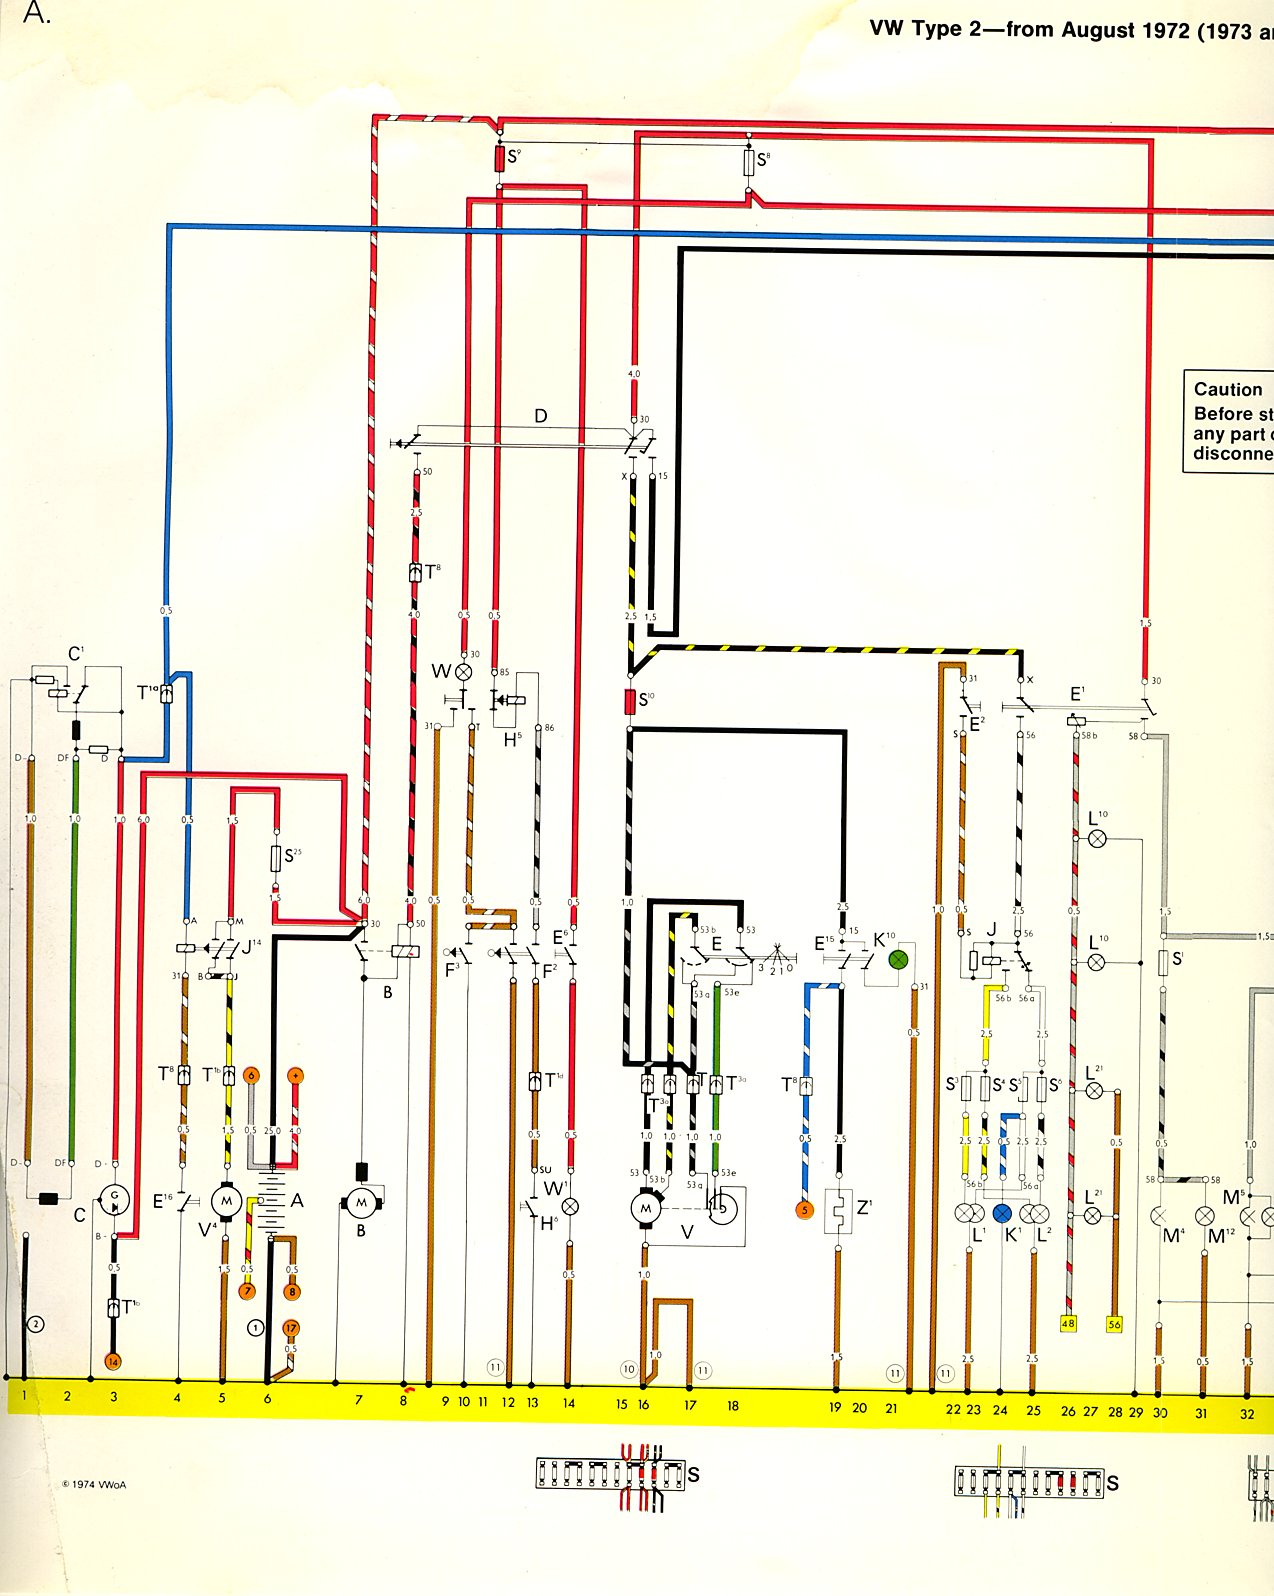 baybus_7374a 1973 74 bus wiring diagram thegoldenbug com Volkswagen Type 2 Wiring Harness at crackthecode.co